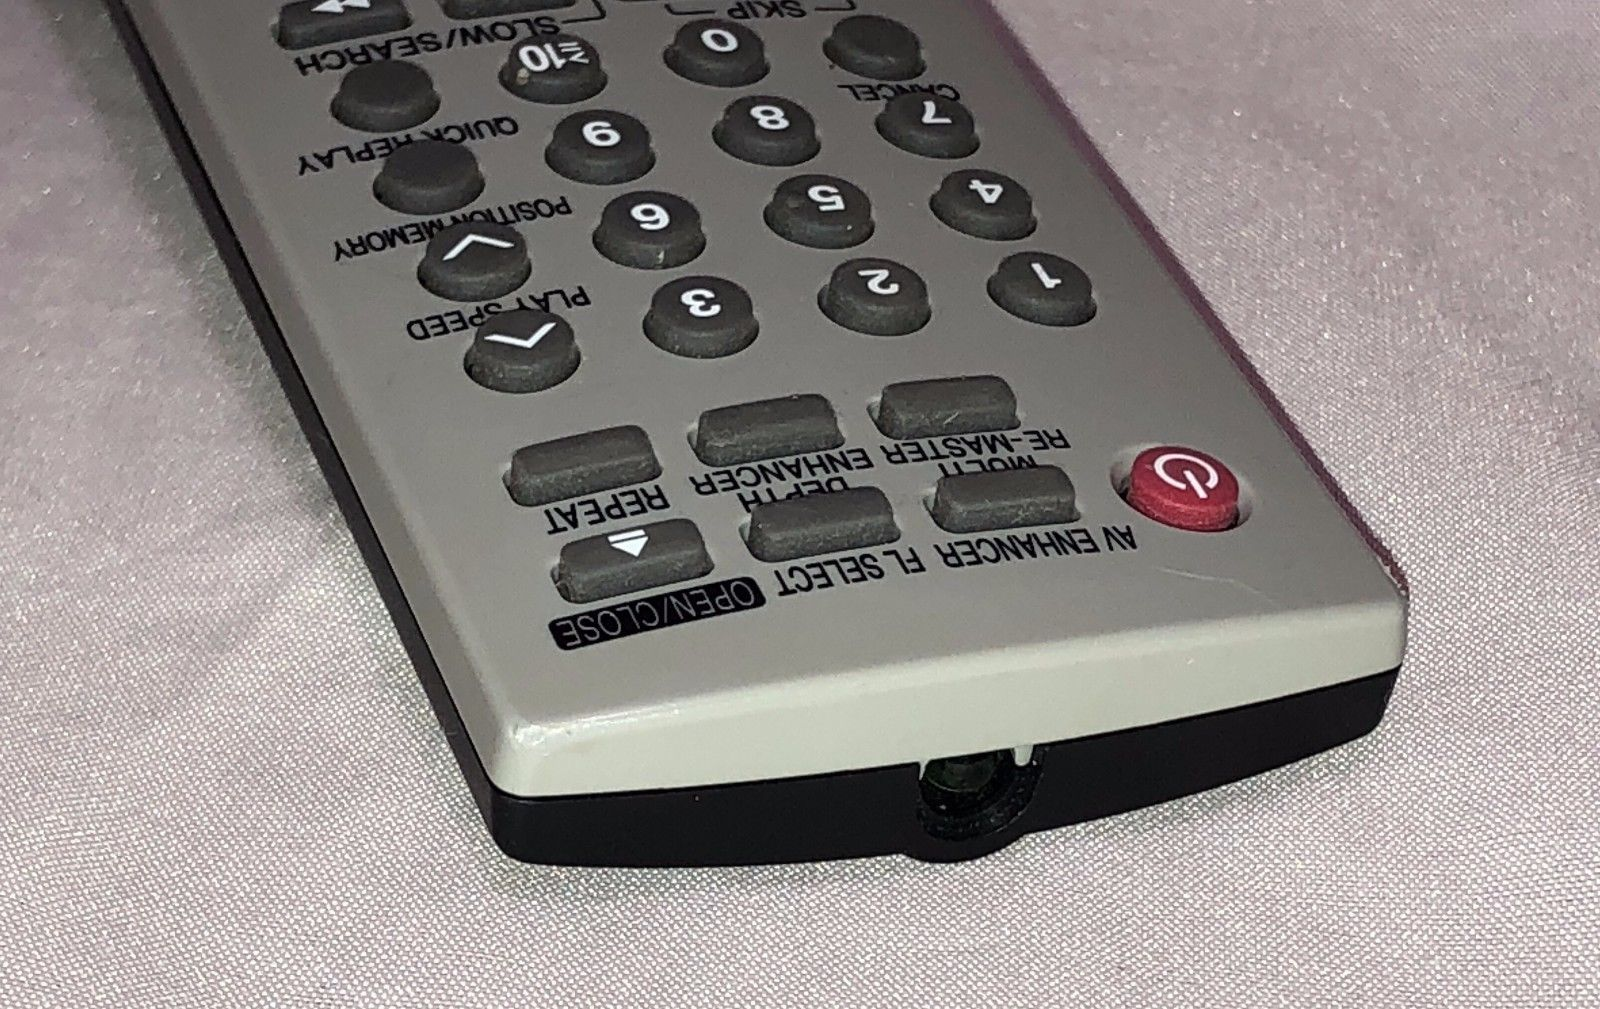 Panasonic EUR7631010 DVD Player Remote Control (for: DVDS47, DVDS47P, DVDS47S)